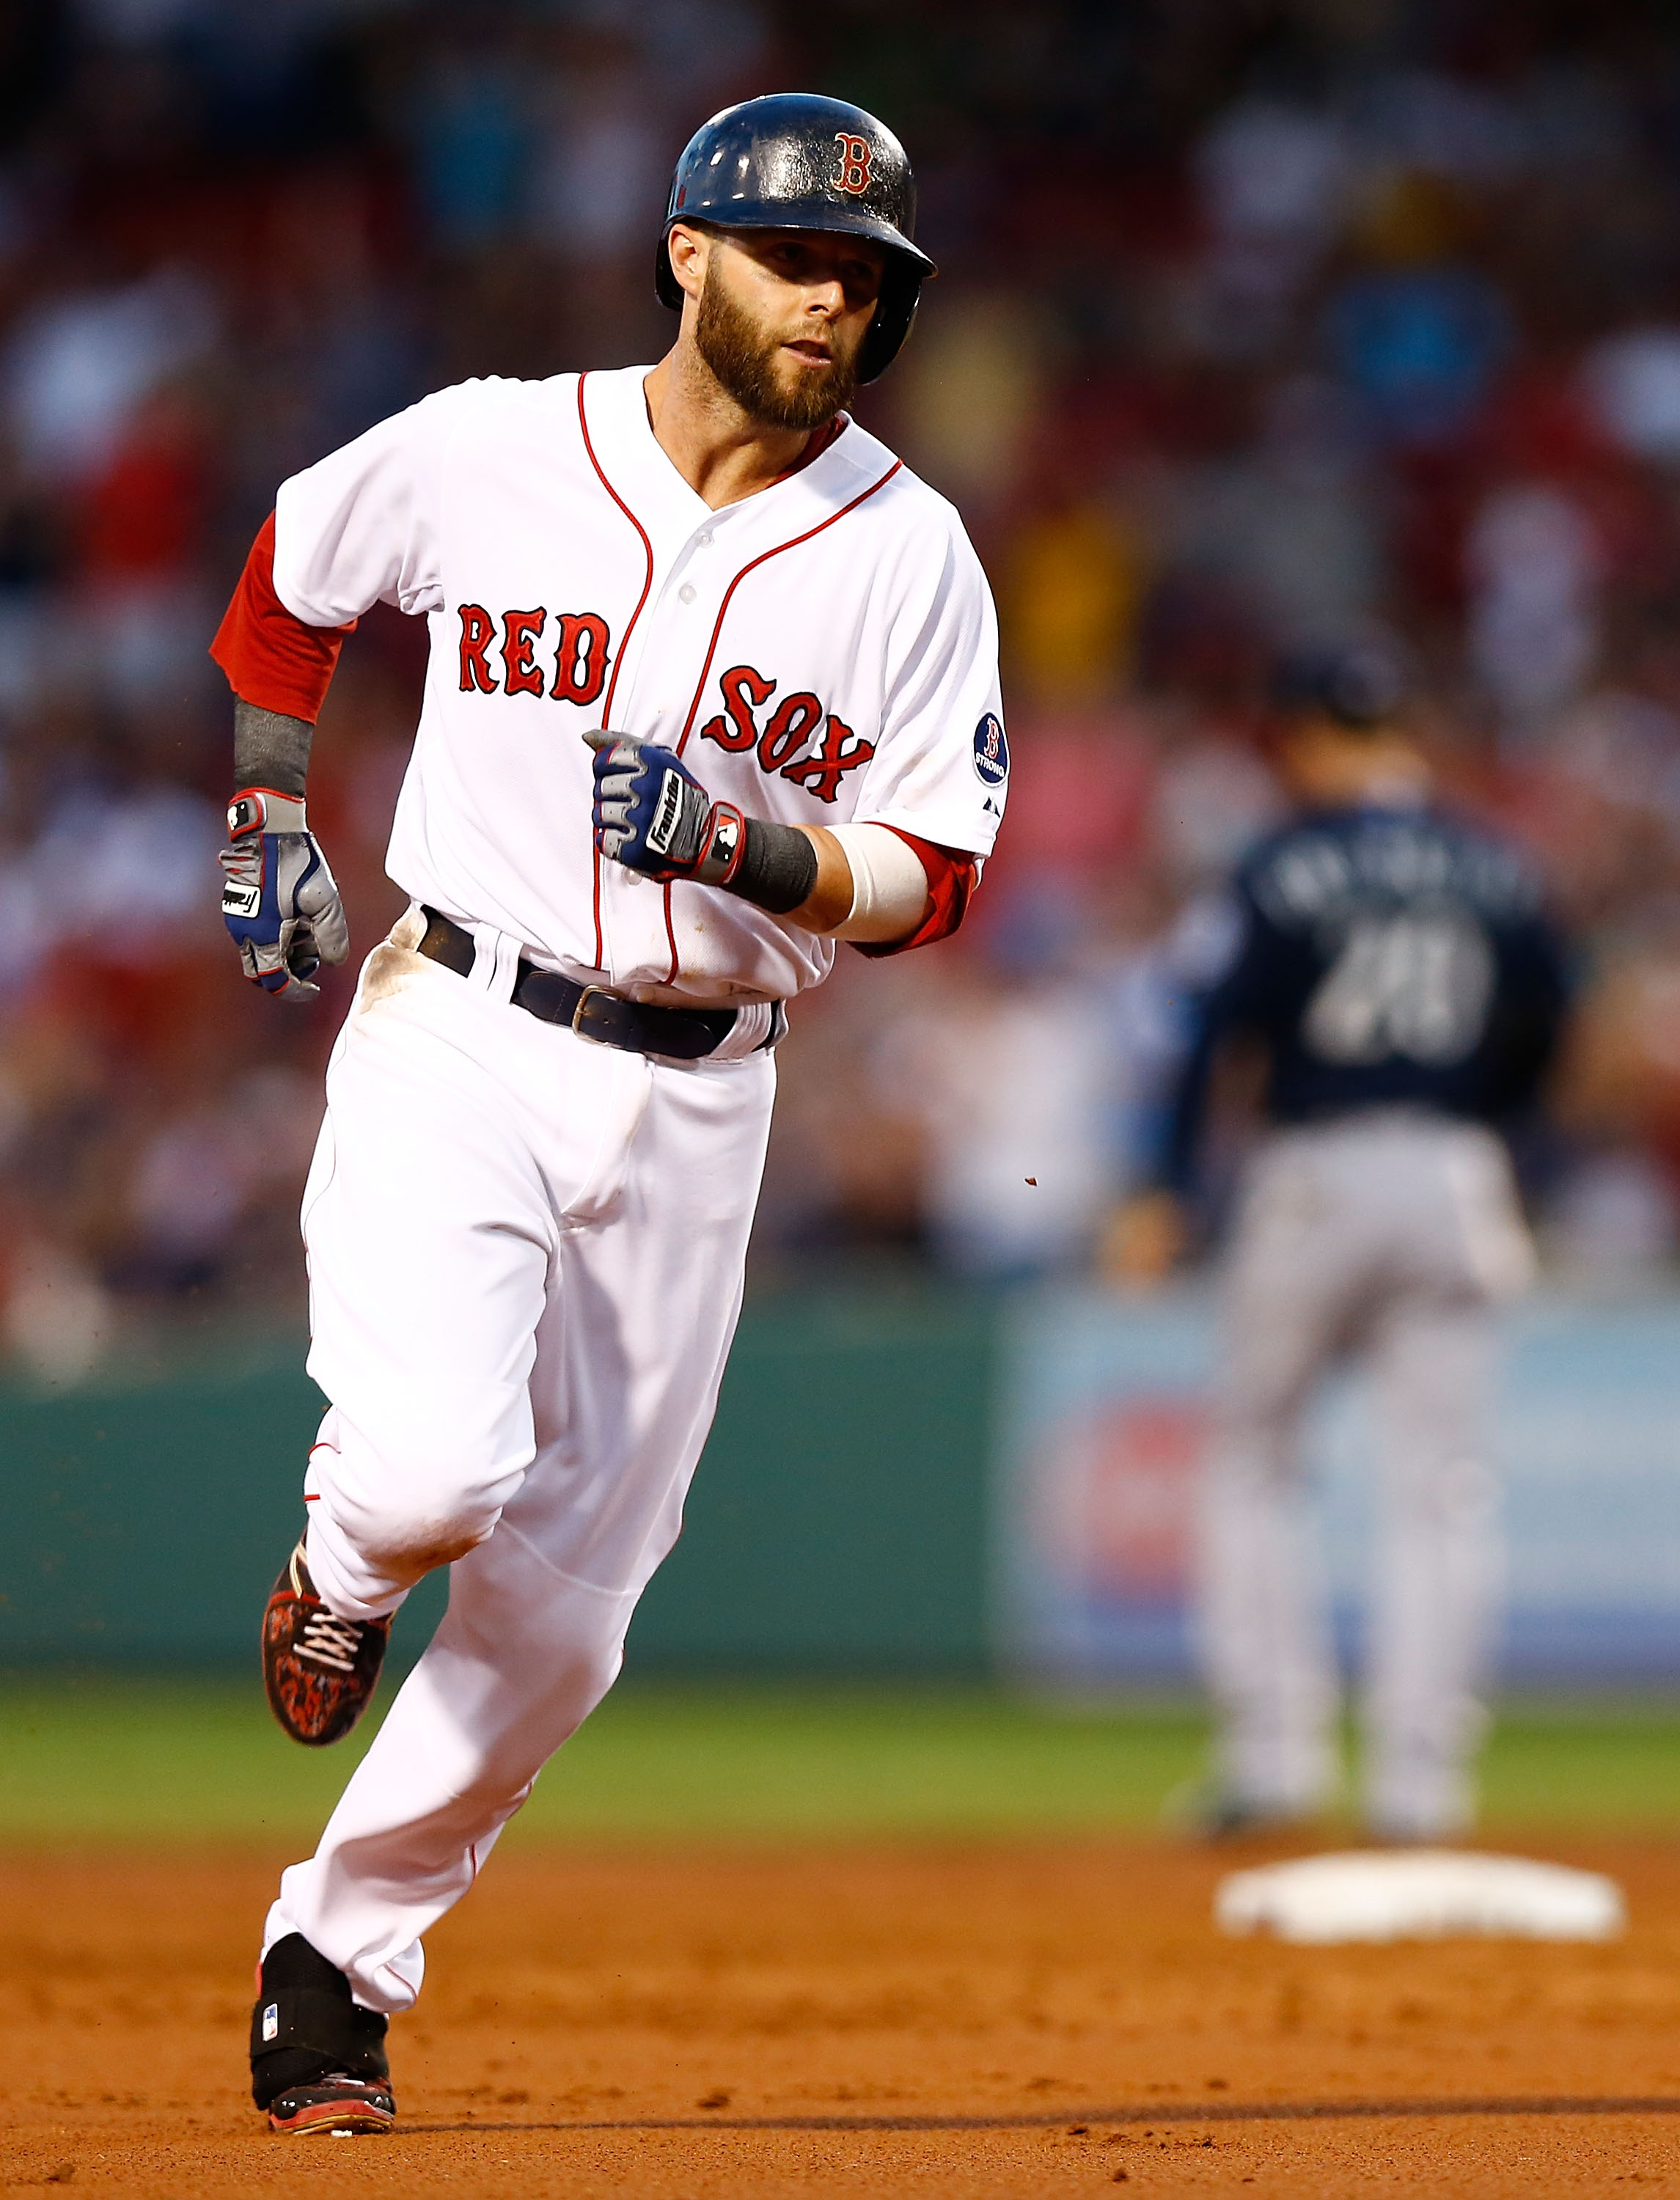 Pedroia even keeled after 2-for-4 night